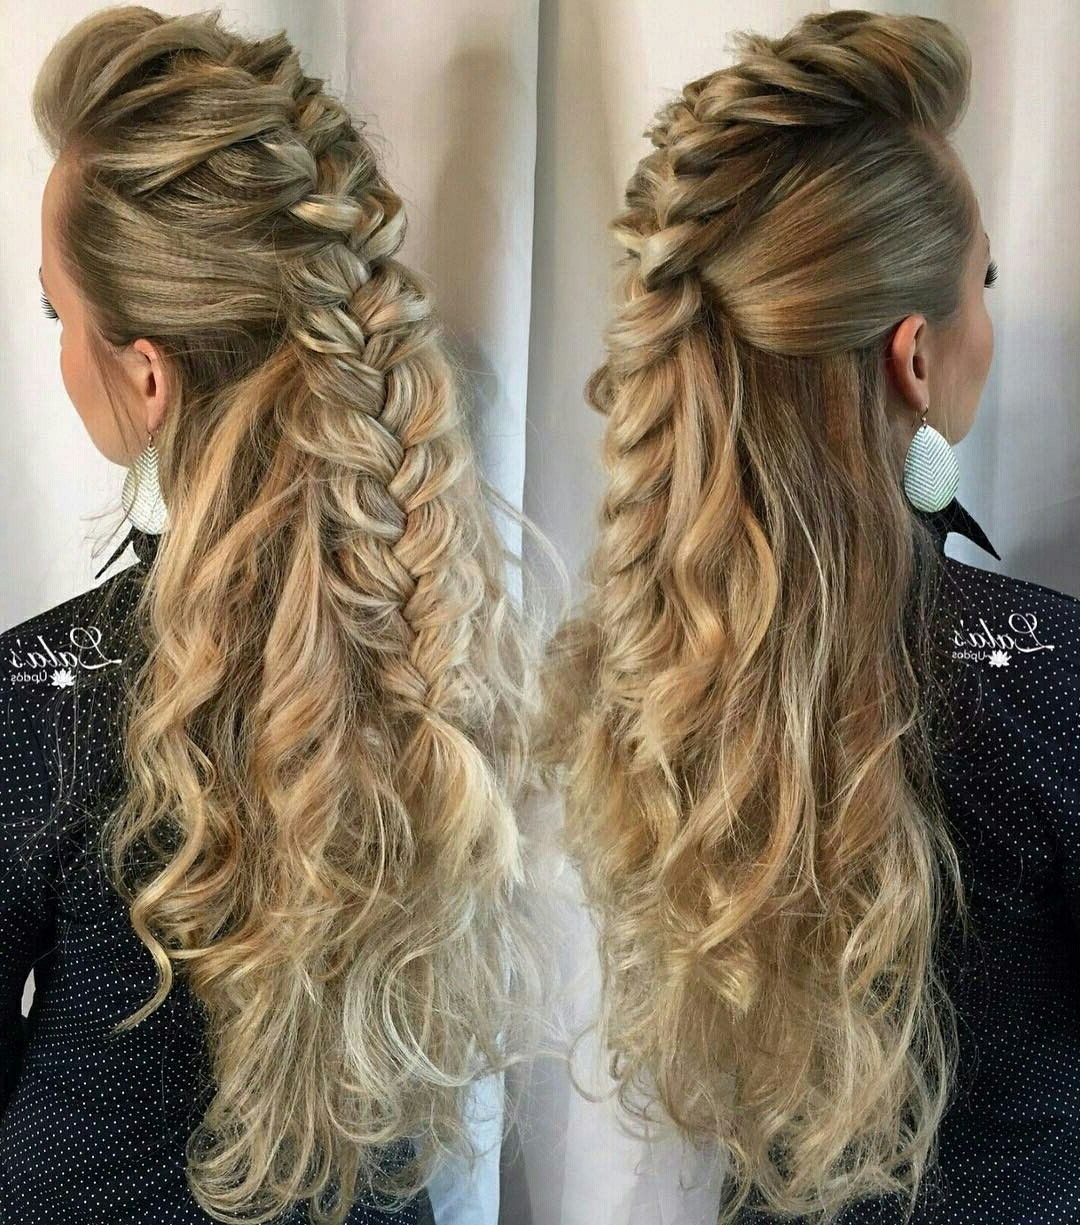 [%newest Half Up Braided Hairstyles For Mohawk Braid Half Updo | Ideas De Peinado | Moños | Trenzas [hairdo|mohawk Braid Half Updo | Ideas De Peinado | Moños | Trenzas [hairdo With Regard To Favorite Half Up Braided Hairstyles%] (View 14 of 15)